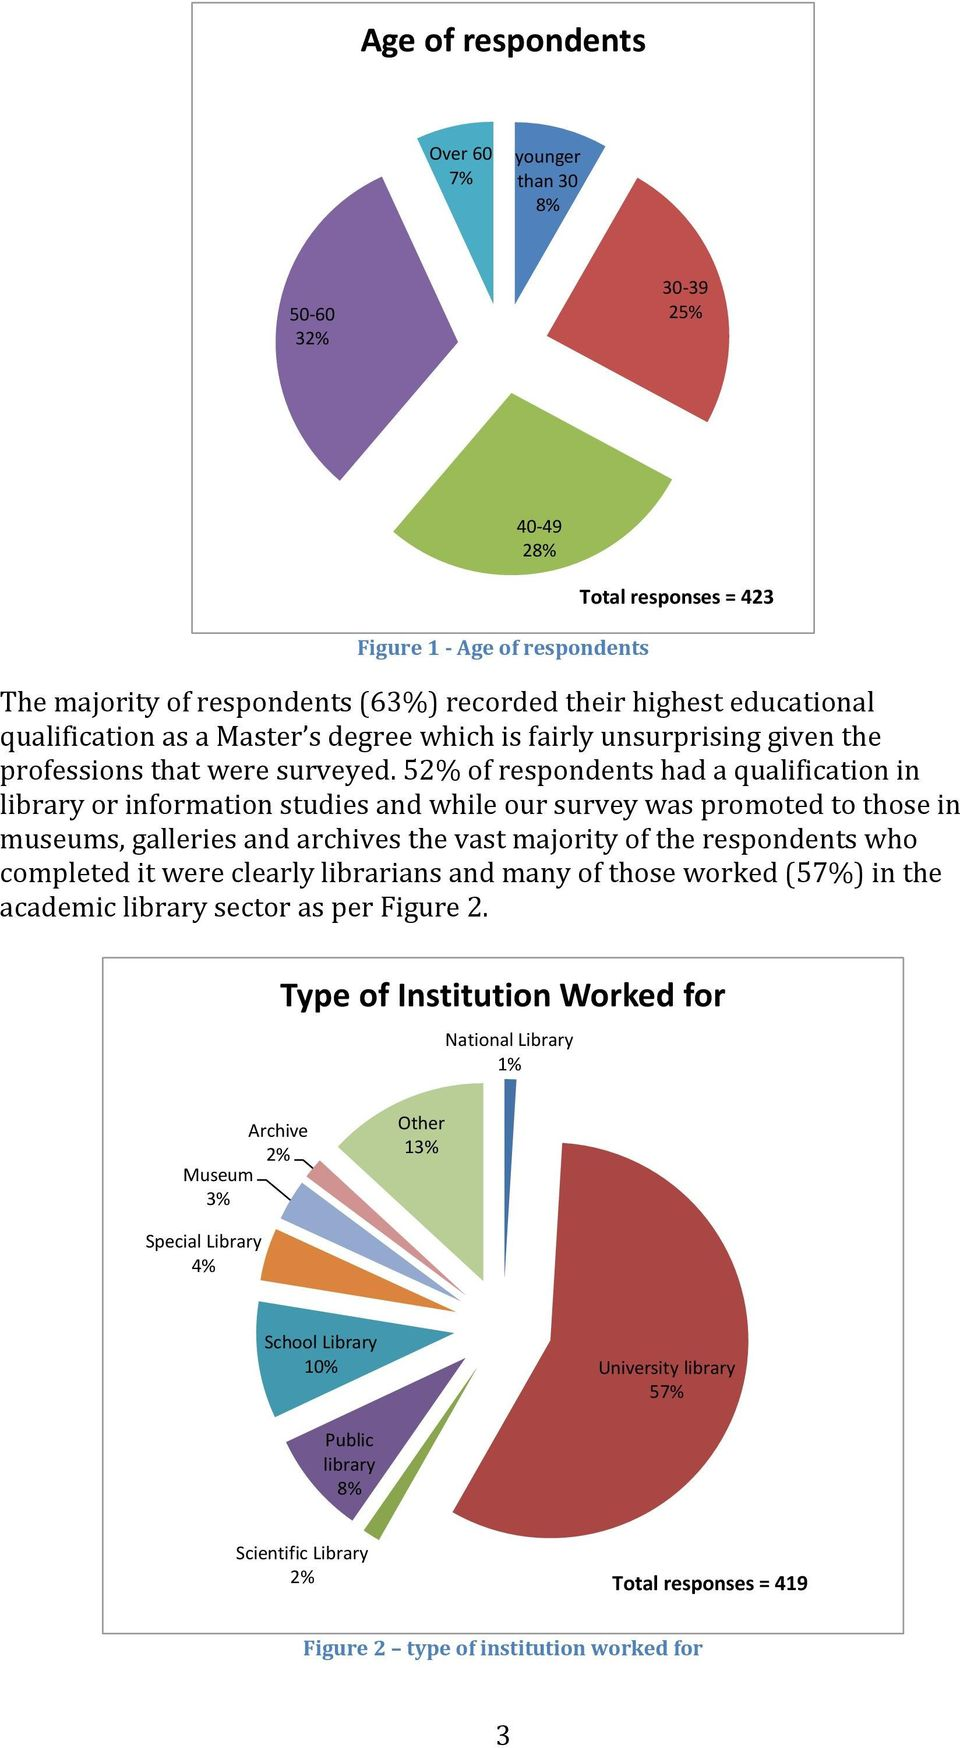 52% of respondents had a qualification in library or information studies and while our survey was promoted to those in museums, galleries and archives the vast majority of the respondents who